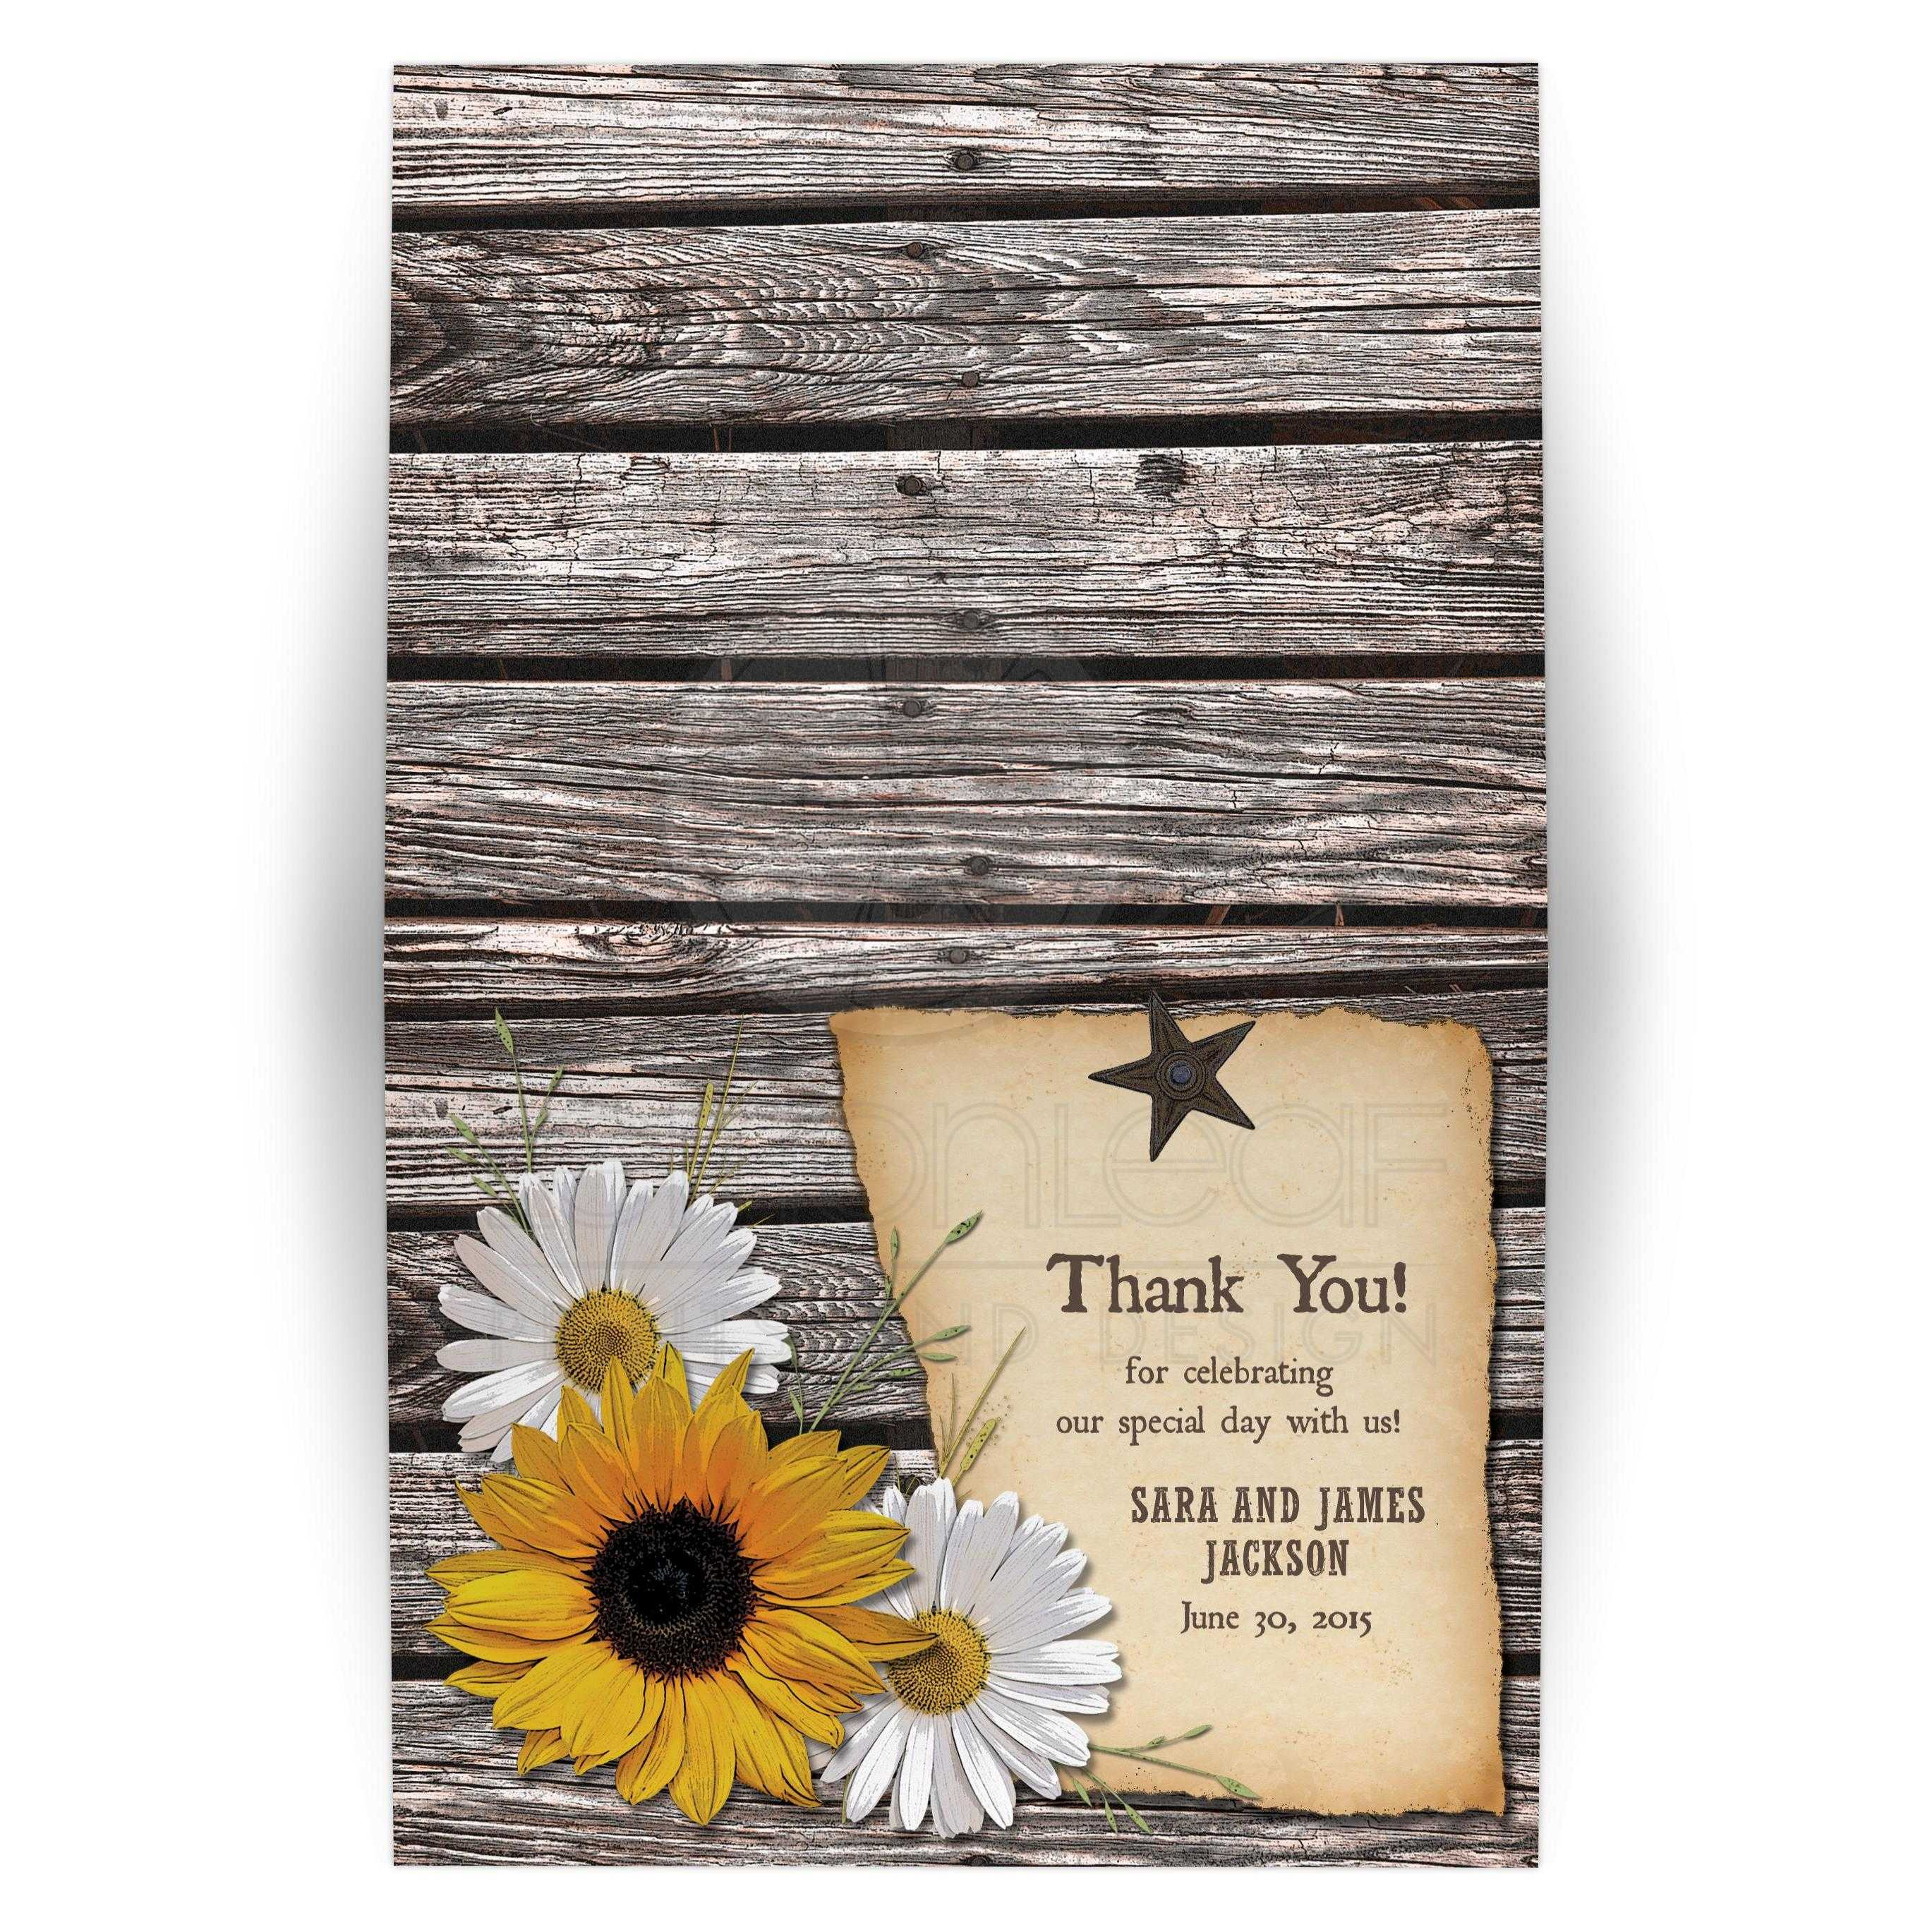 Wedding invitations sunflower wedding invitation rustic burlap and - Country Wedding Thank You Card Rustic Sunflower Daisy Wood